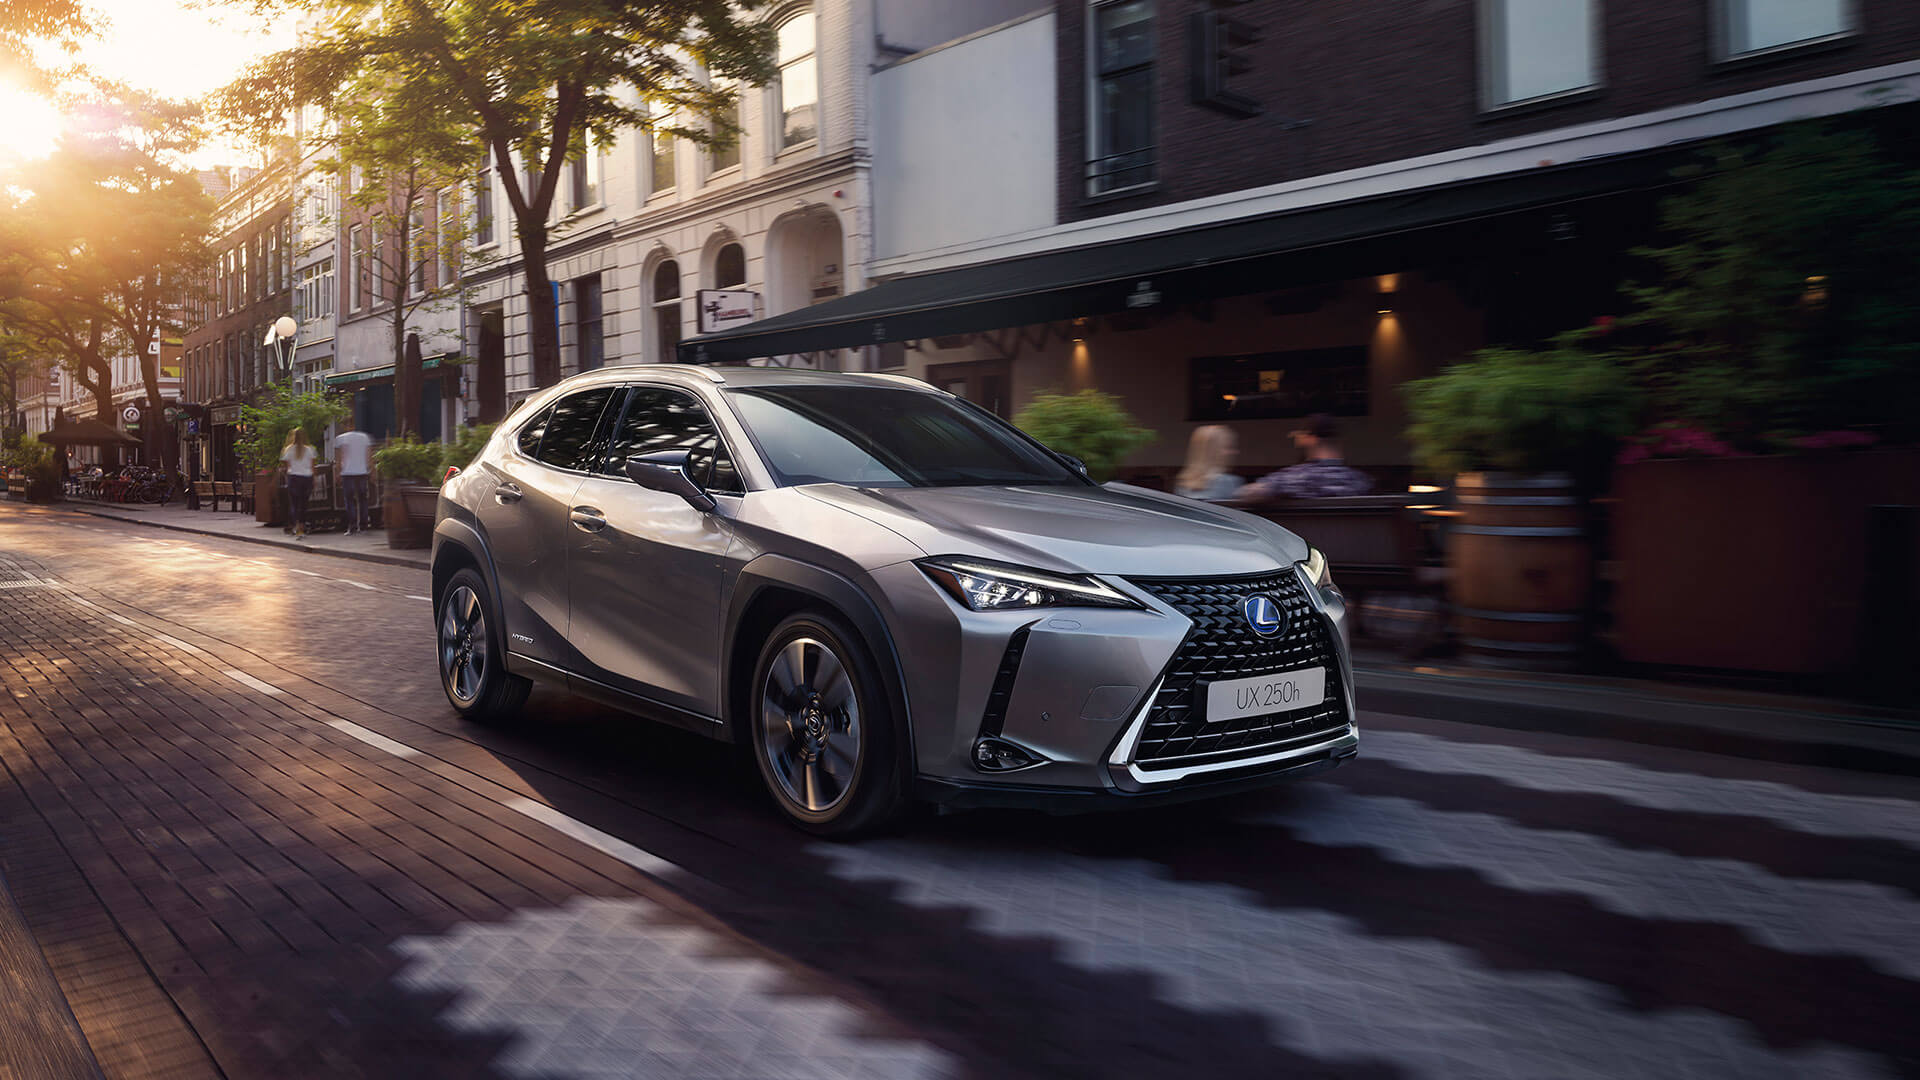 Lexus UX 250h Next Step image